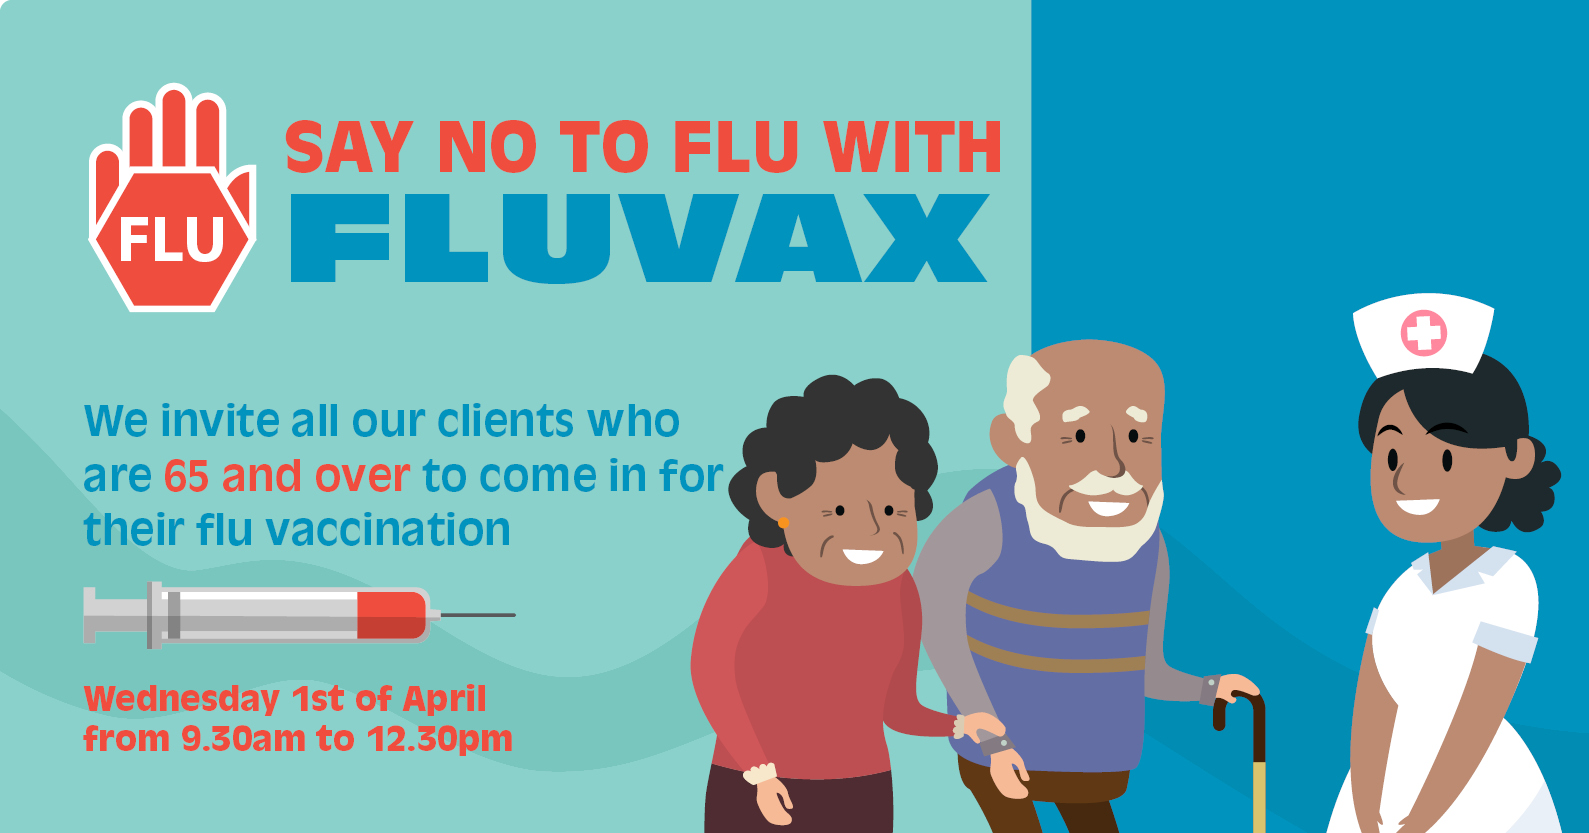 FLUVAX for 65 years old and over